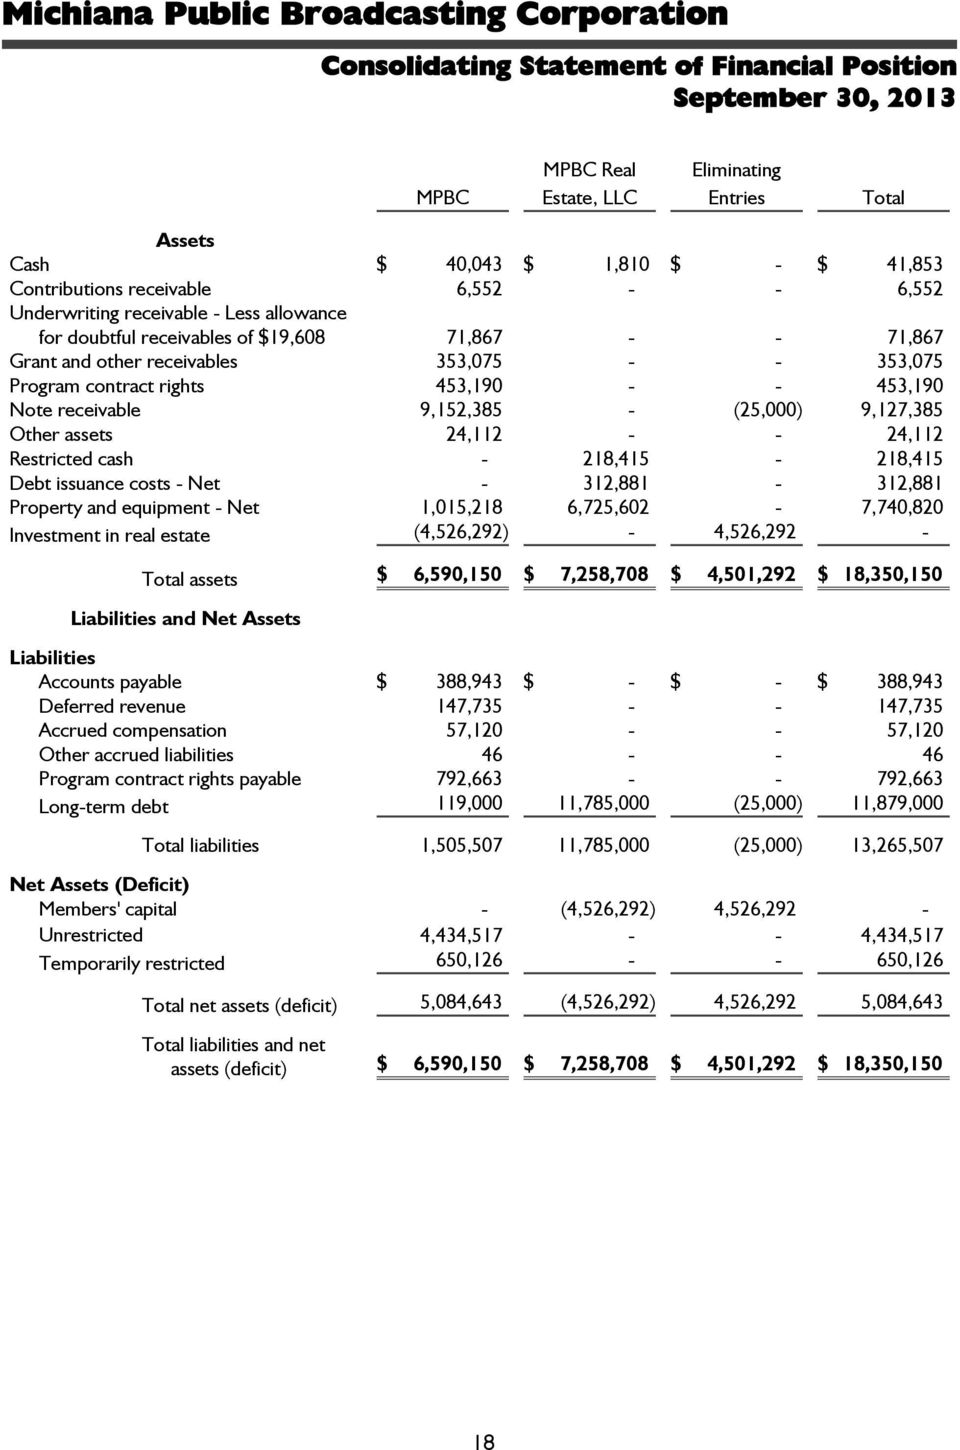 receivable 9,152,385 - (25,000) 9,127,385 Other assets 24,112 - - 24,112 Restricted cash - 218,415-218,415 Debt issuance costs - Net - 312,881-312,881 Property and equipment - Net 1,015,218